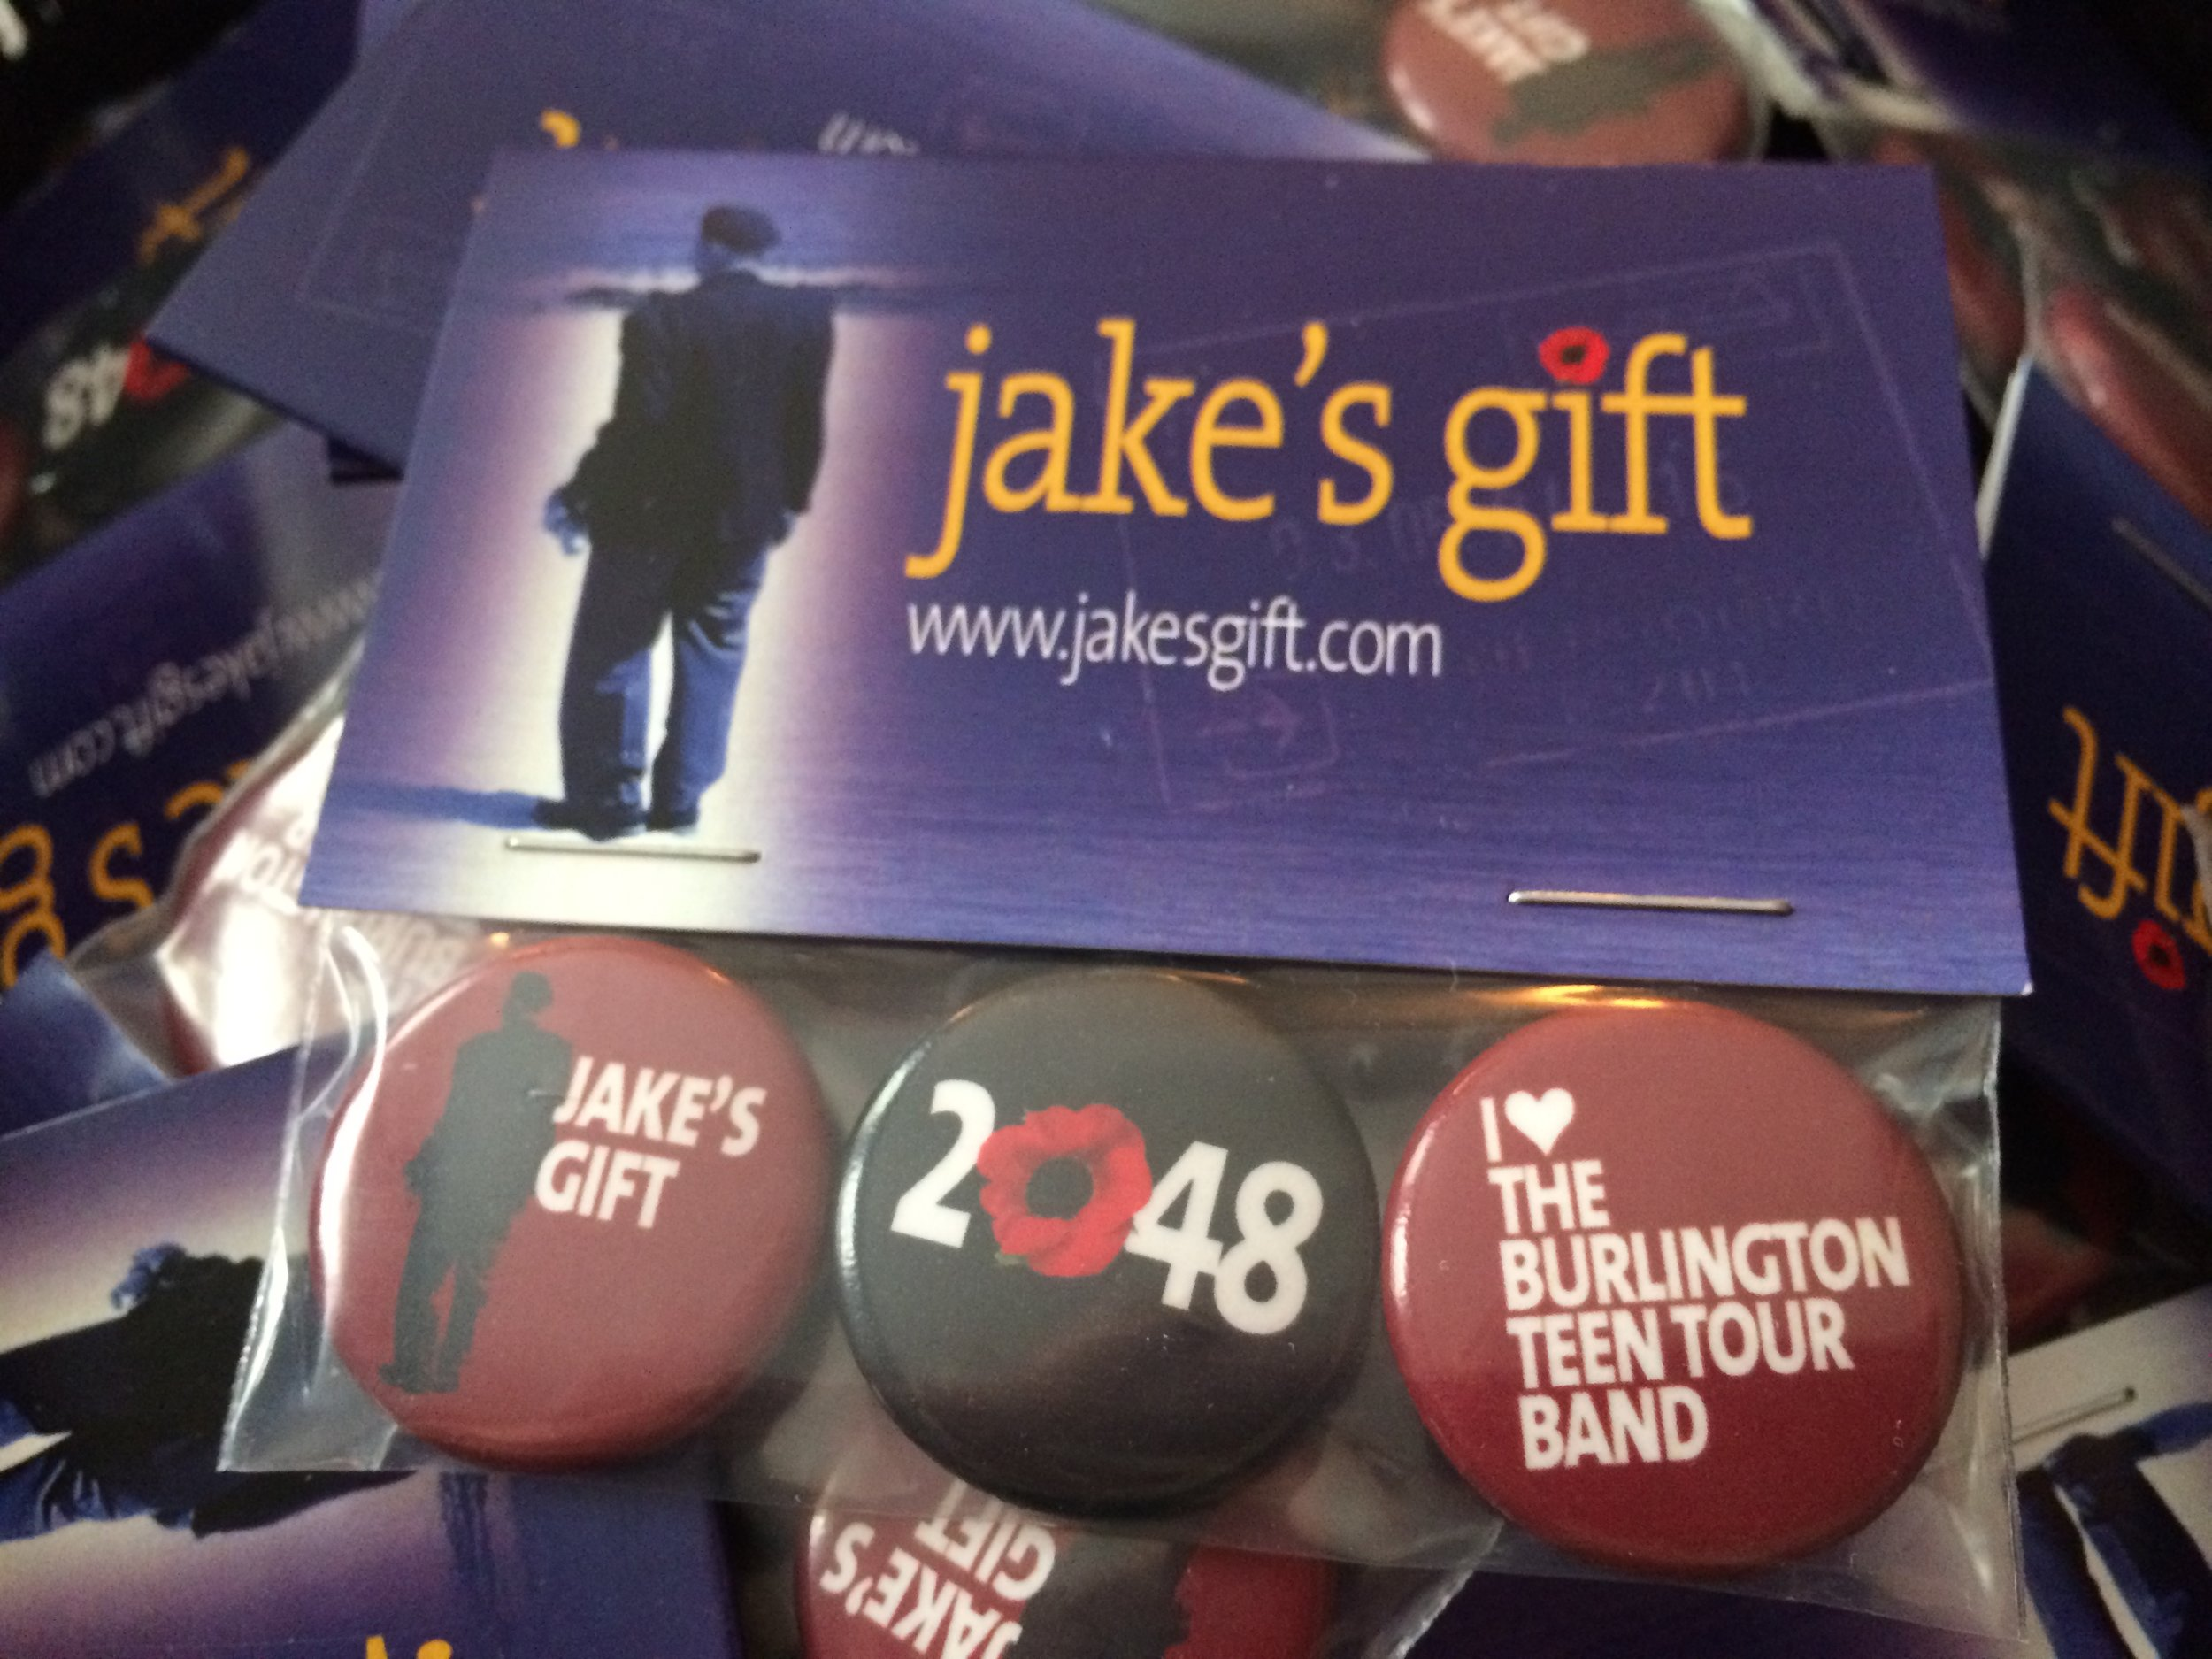 designed by juno productions - In the summer of 2010, Director and Graphic Designer Dirk Van Stralen created a set of three Jake's Gift buttons, each pertaining to a theme within the play. Since that summer, Juno Productions has sold these button packages at their performances, and 100% of the profits have always been donated back to the Legions of the communities they perform in. The button packages sell for $5.00 each. To date, the company has raised over $50,000.00 for Poppy Trust Funds and Legions across Canada.